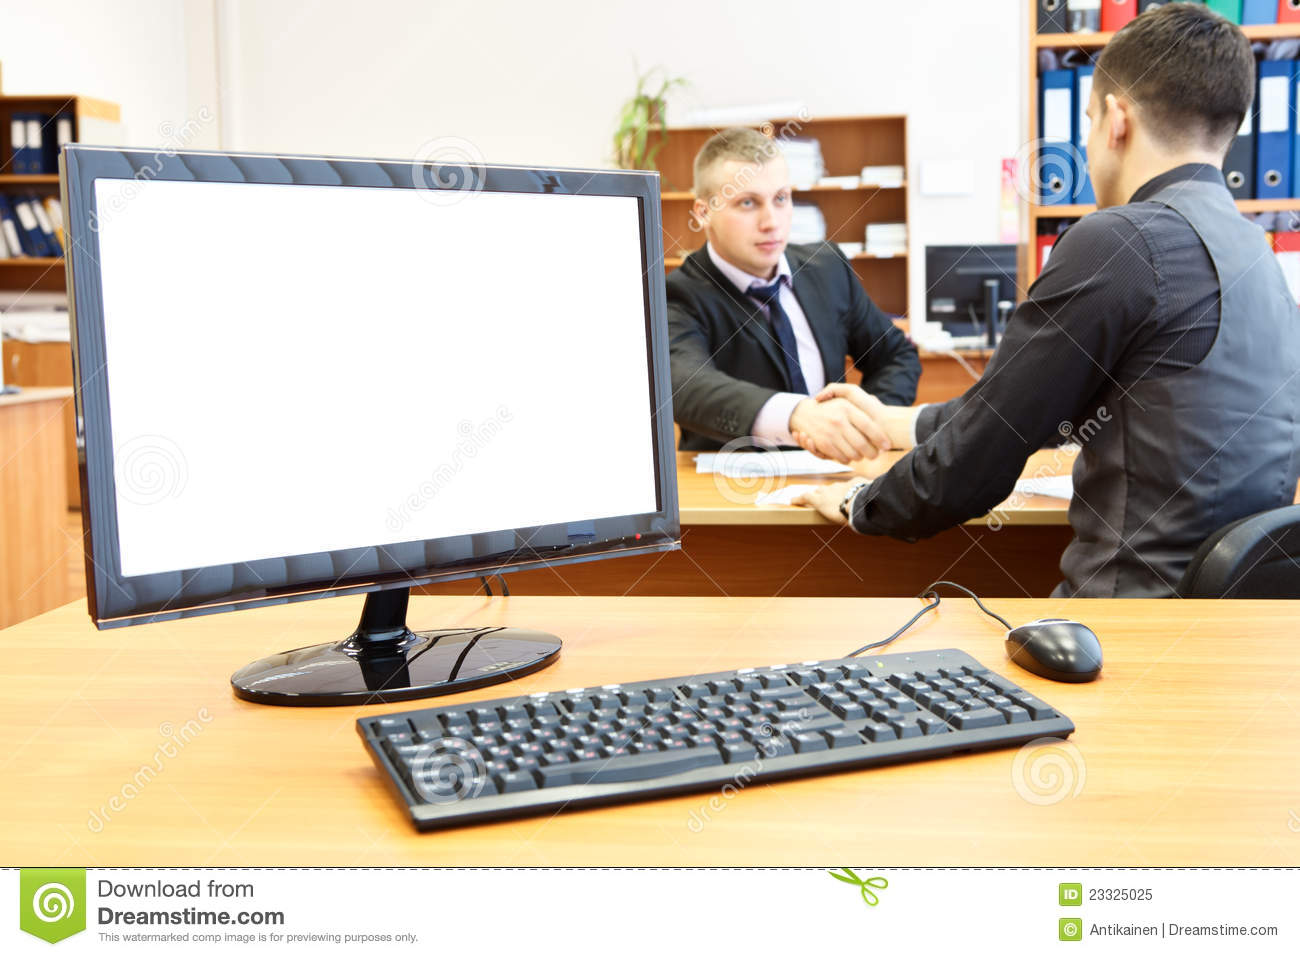 Office Computer On Desk And People Royalty Free Stock Photo - Image